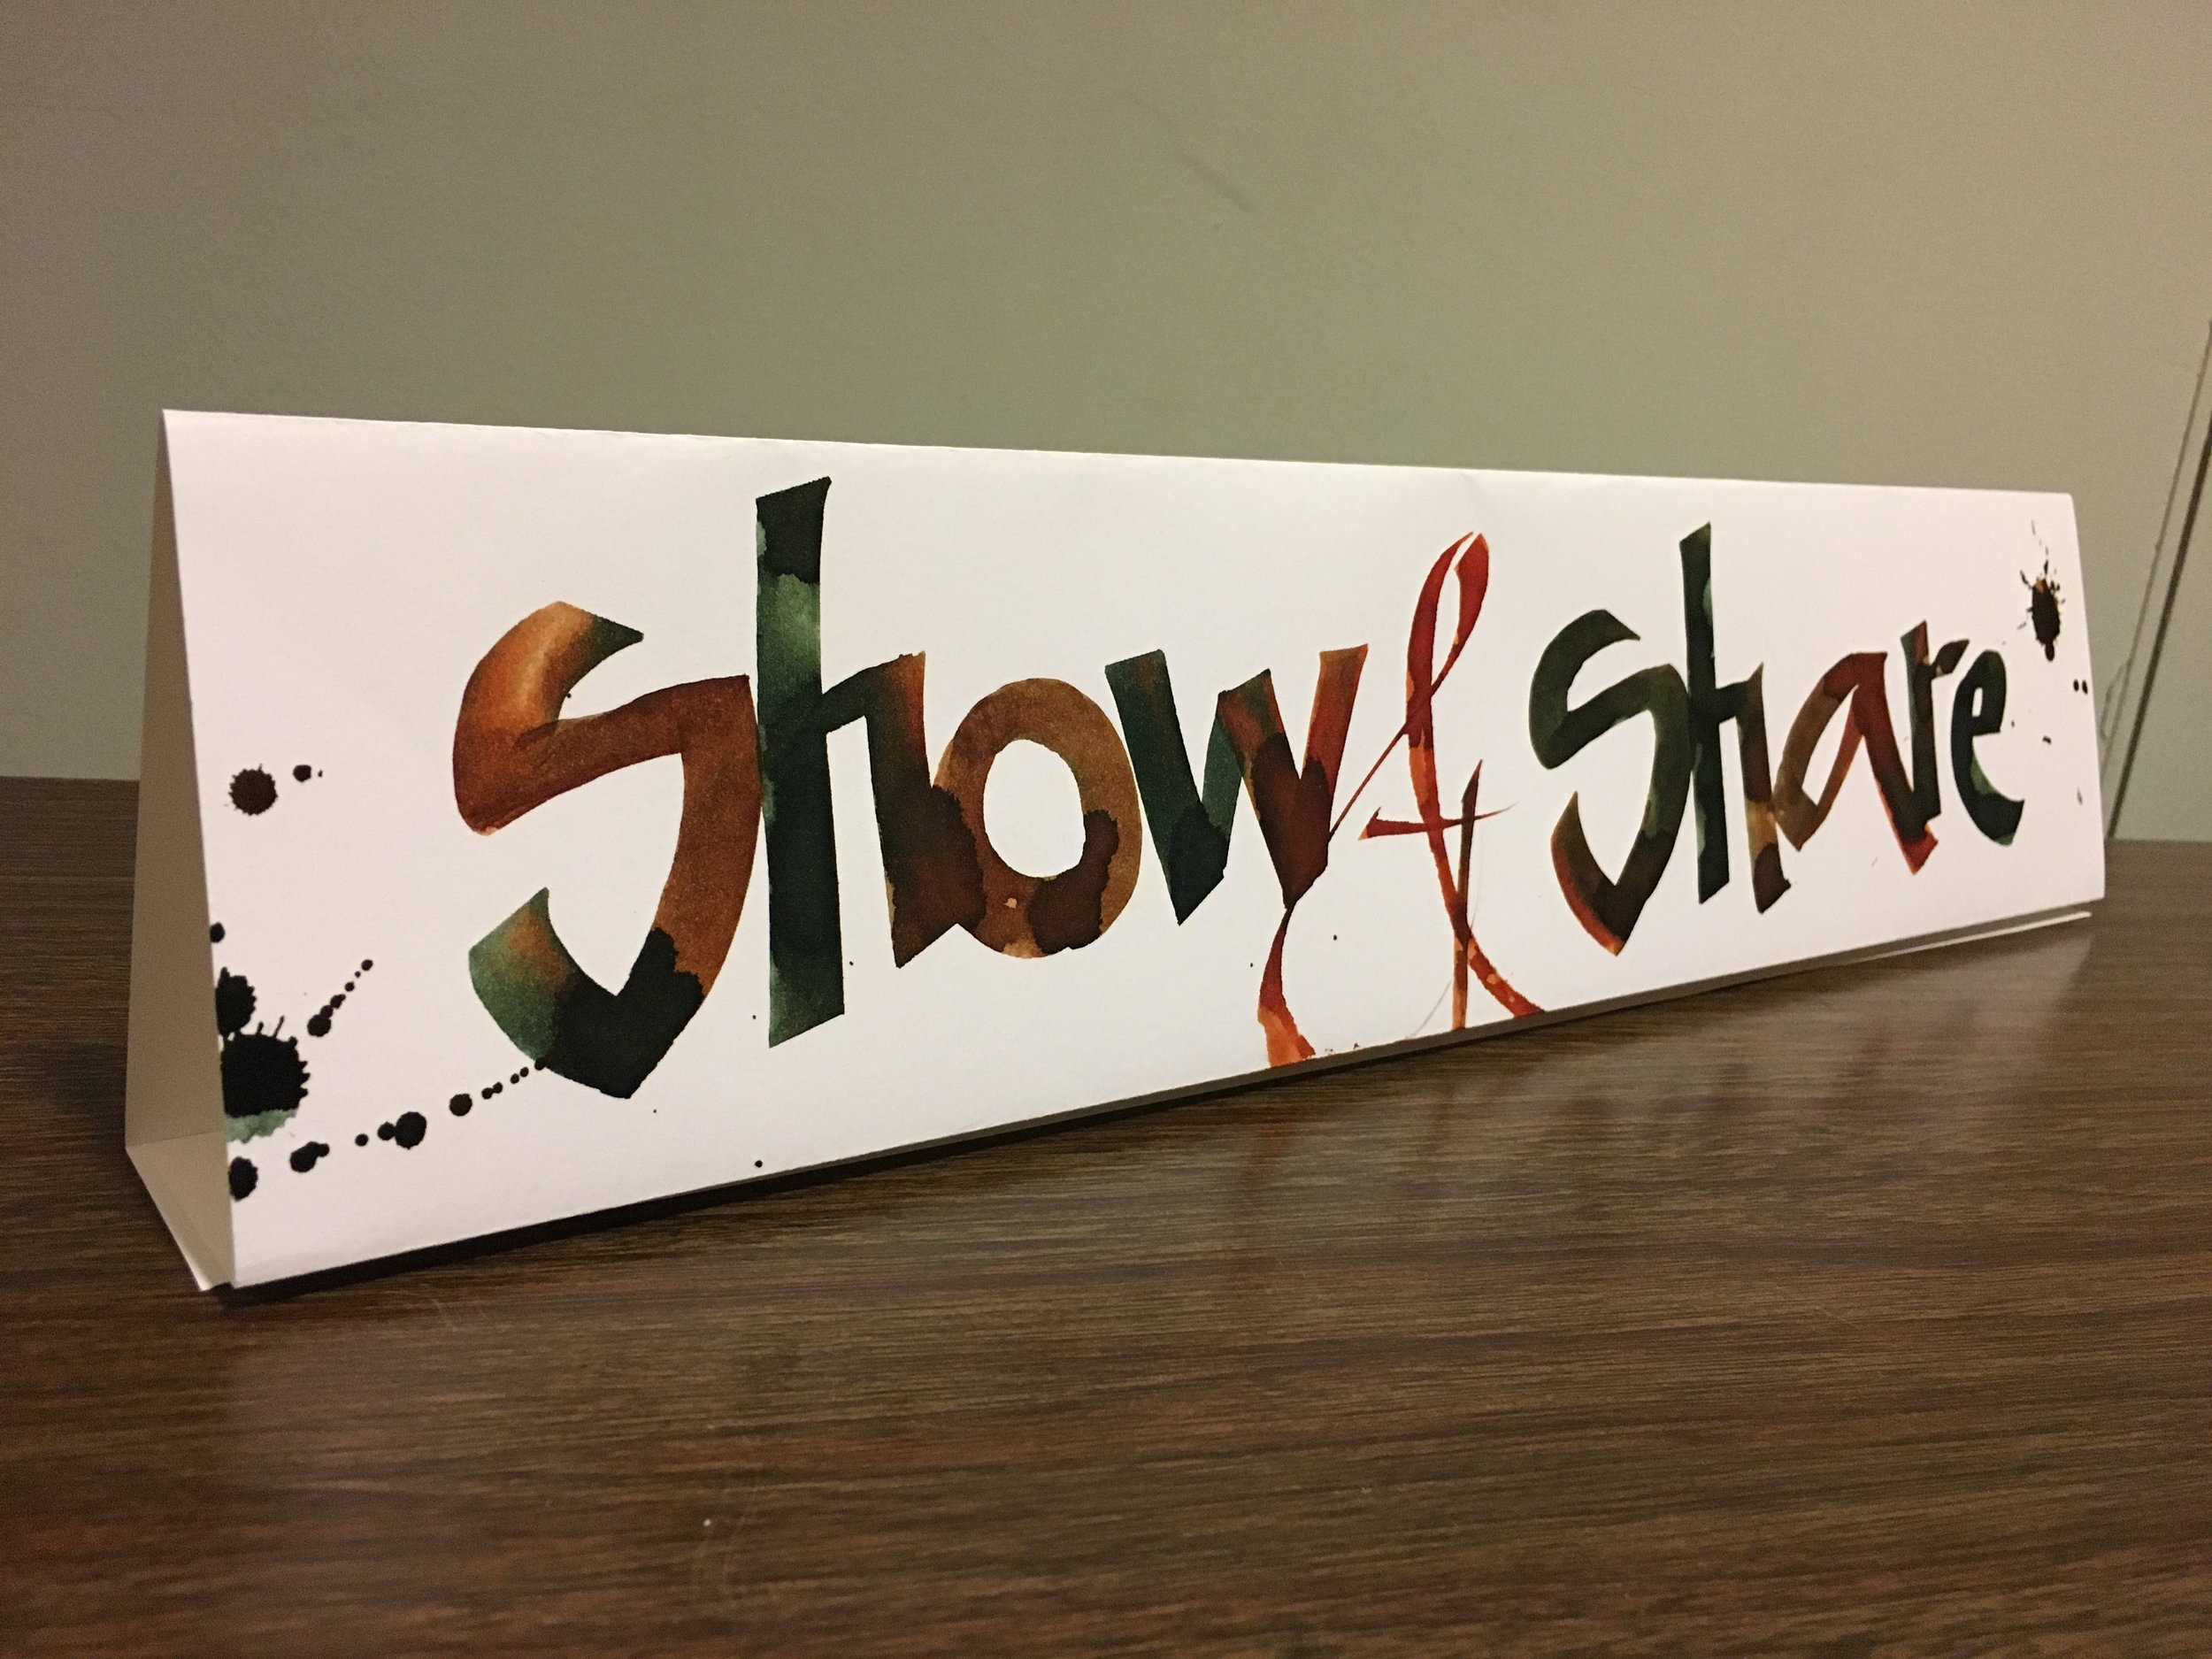 17pro09-swightkin-show-and-share-sign.jpg